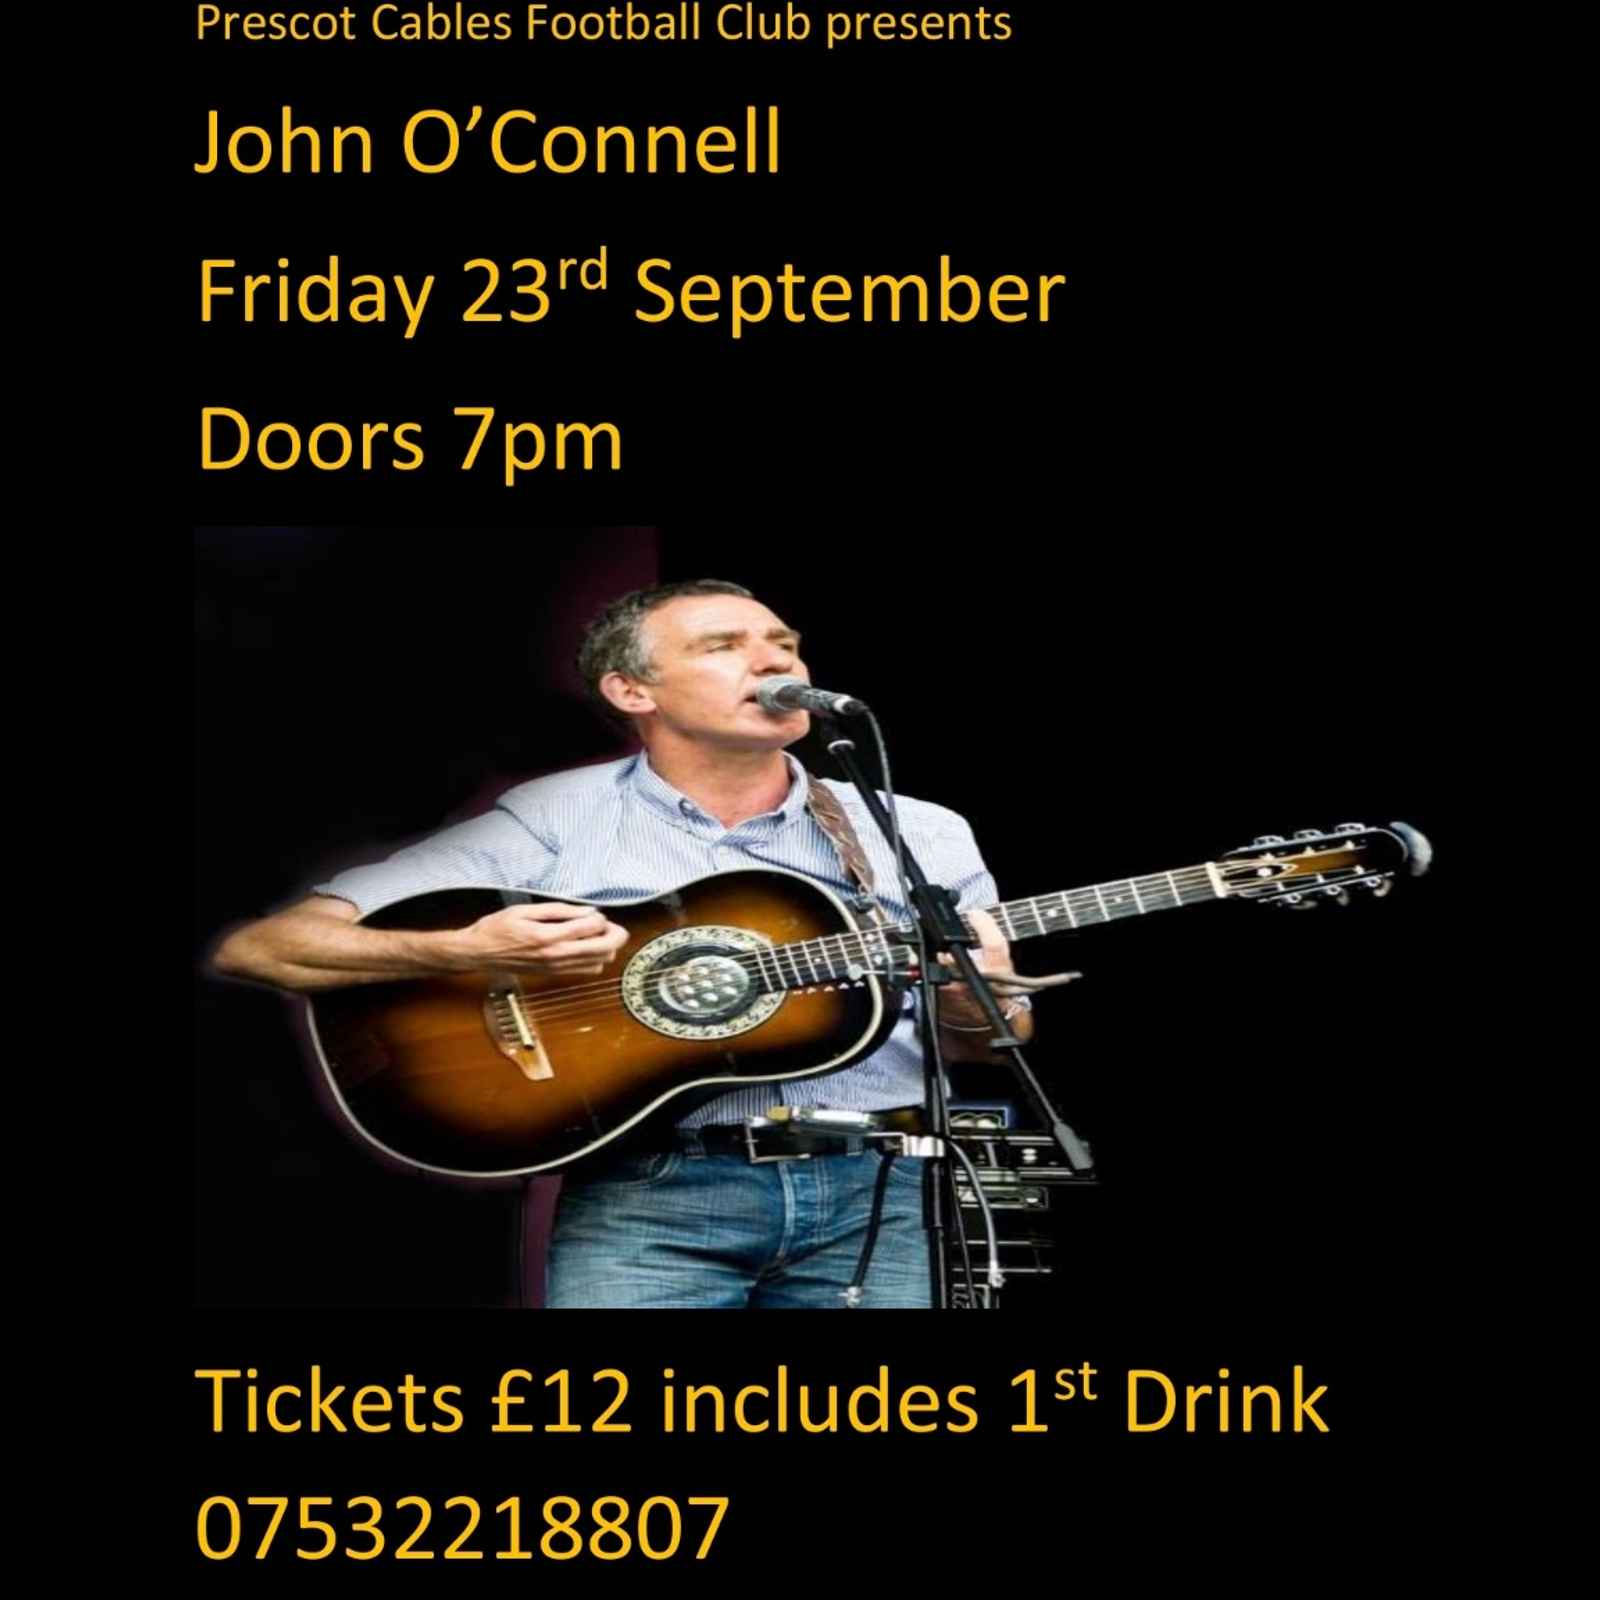 John O'Connell Live at Cables